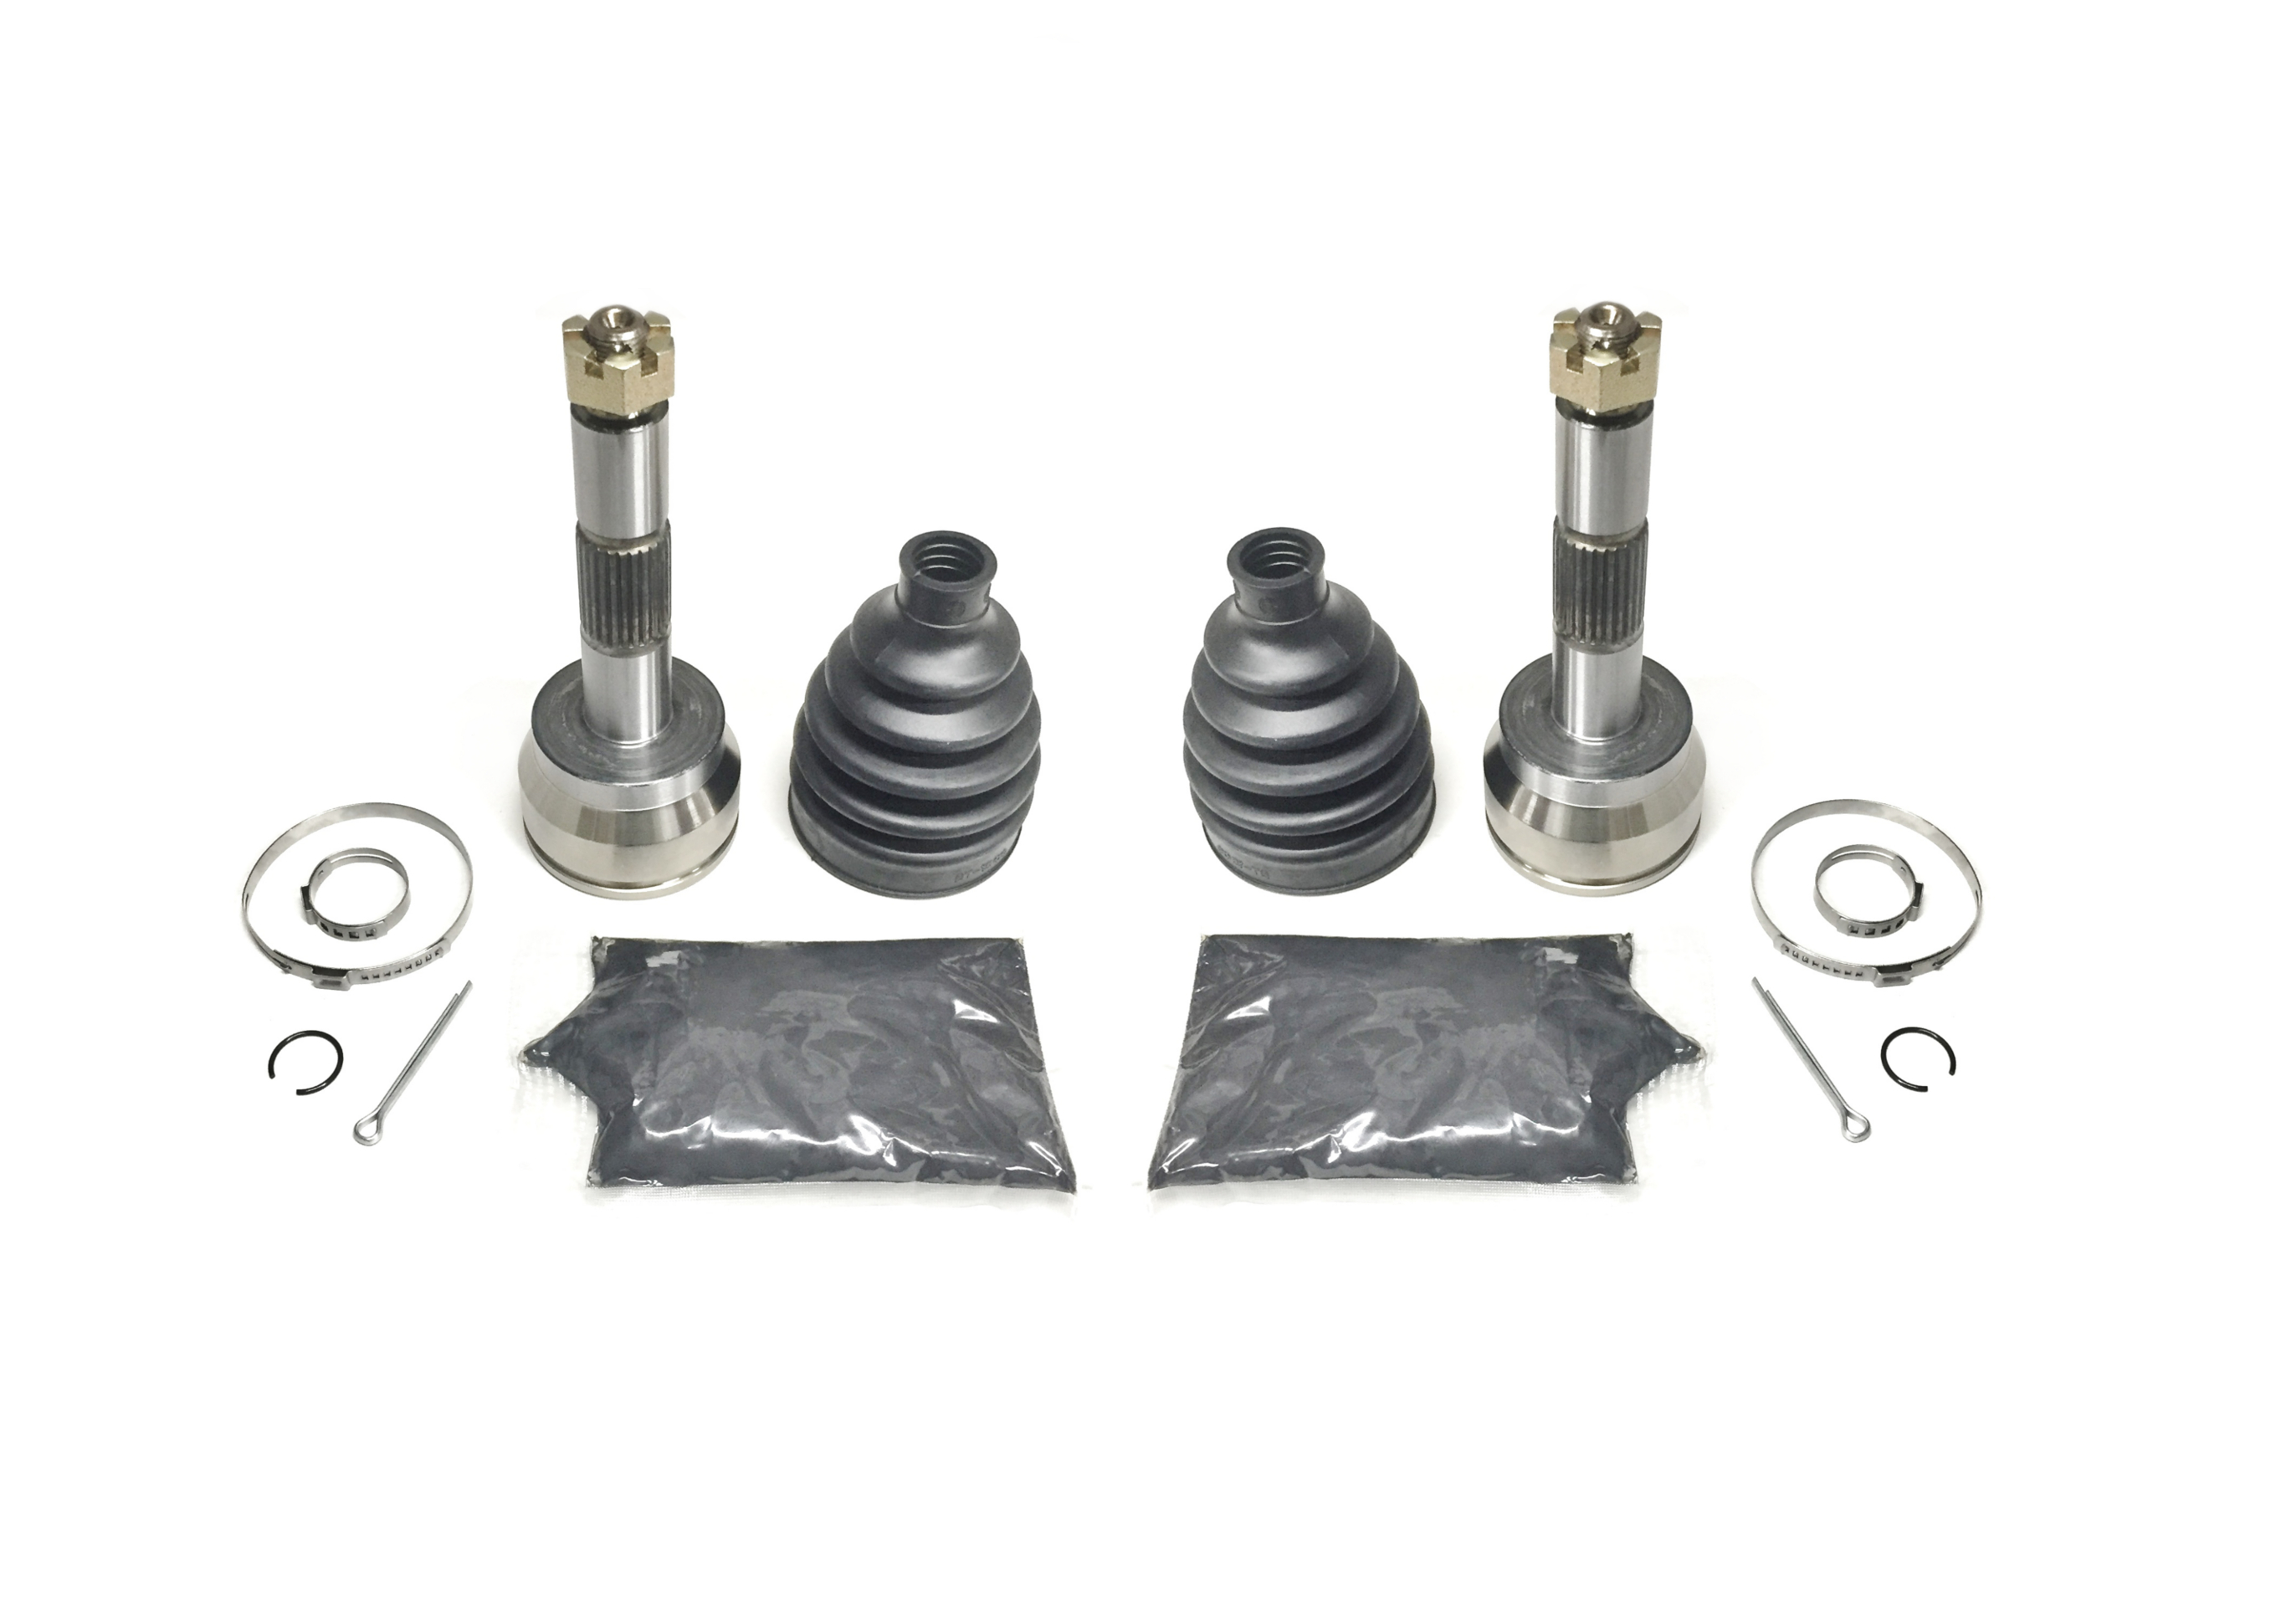 6x6 1998-2001 Polaris 500 Sportsman 4x4 2 Front Axle Outer CV Joint Kits